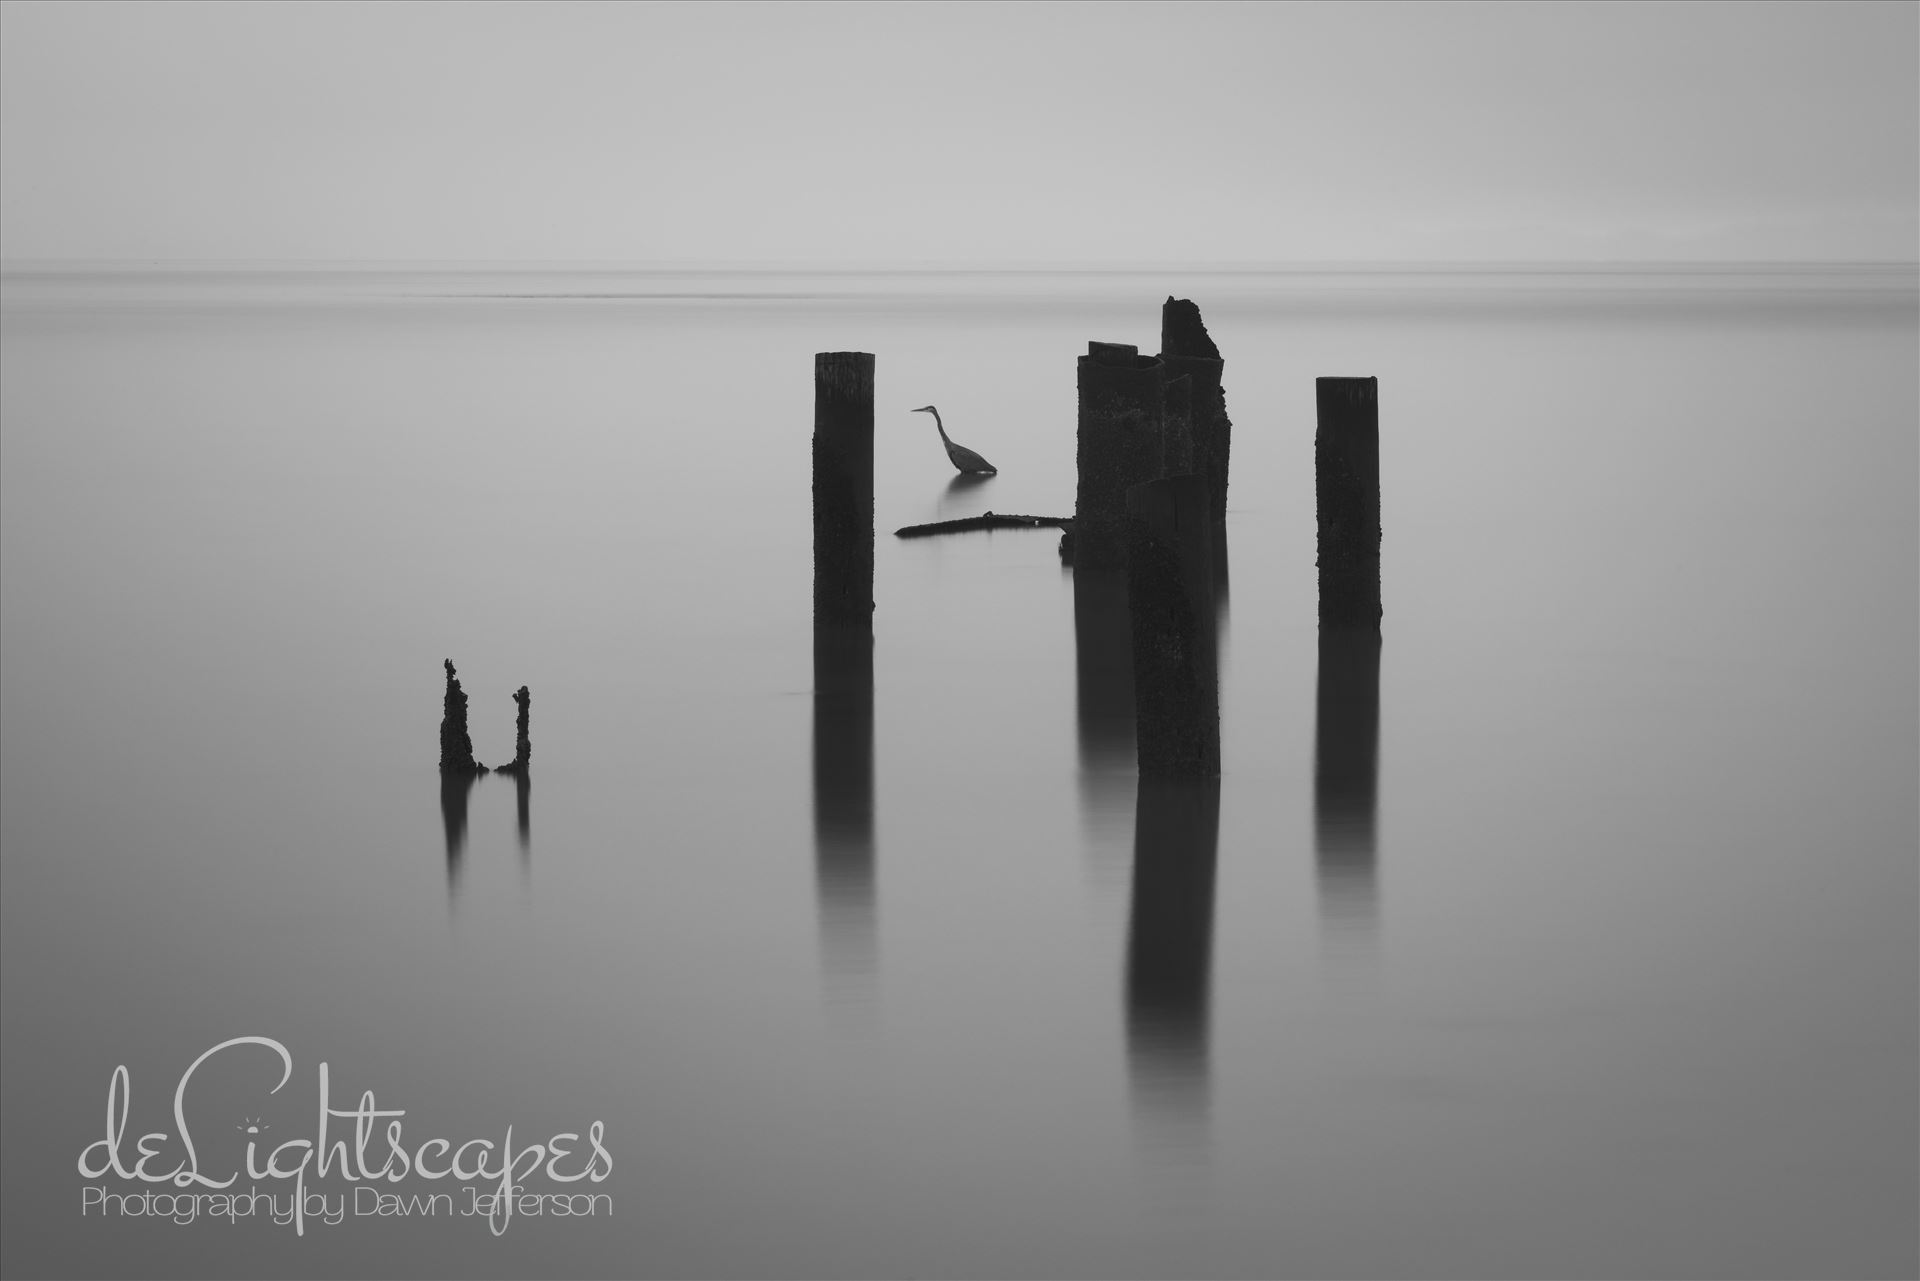 Thirty Seconds of Stillness - This is a thirty second exposure in the which the hunting heron stood completely still focused on his fishing. by Dawn Jefferson